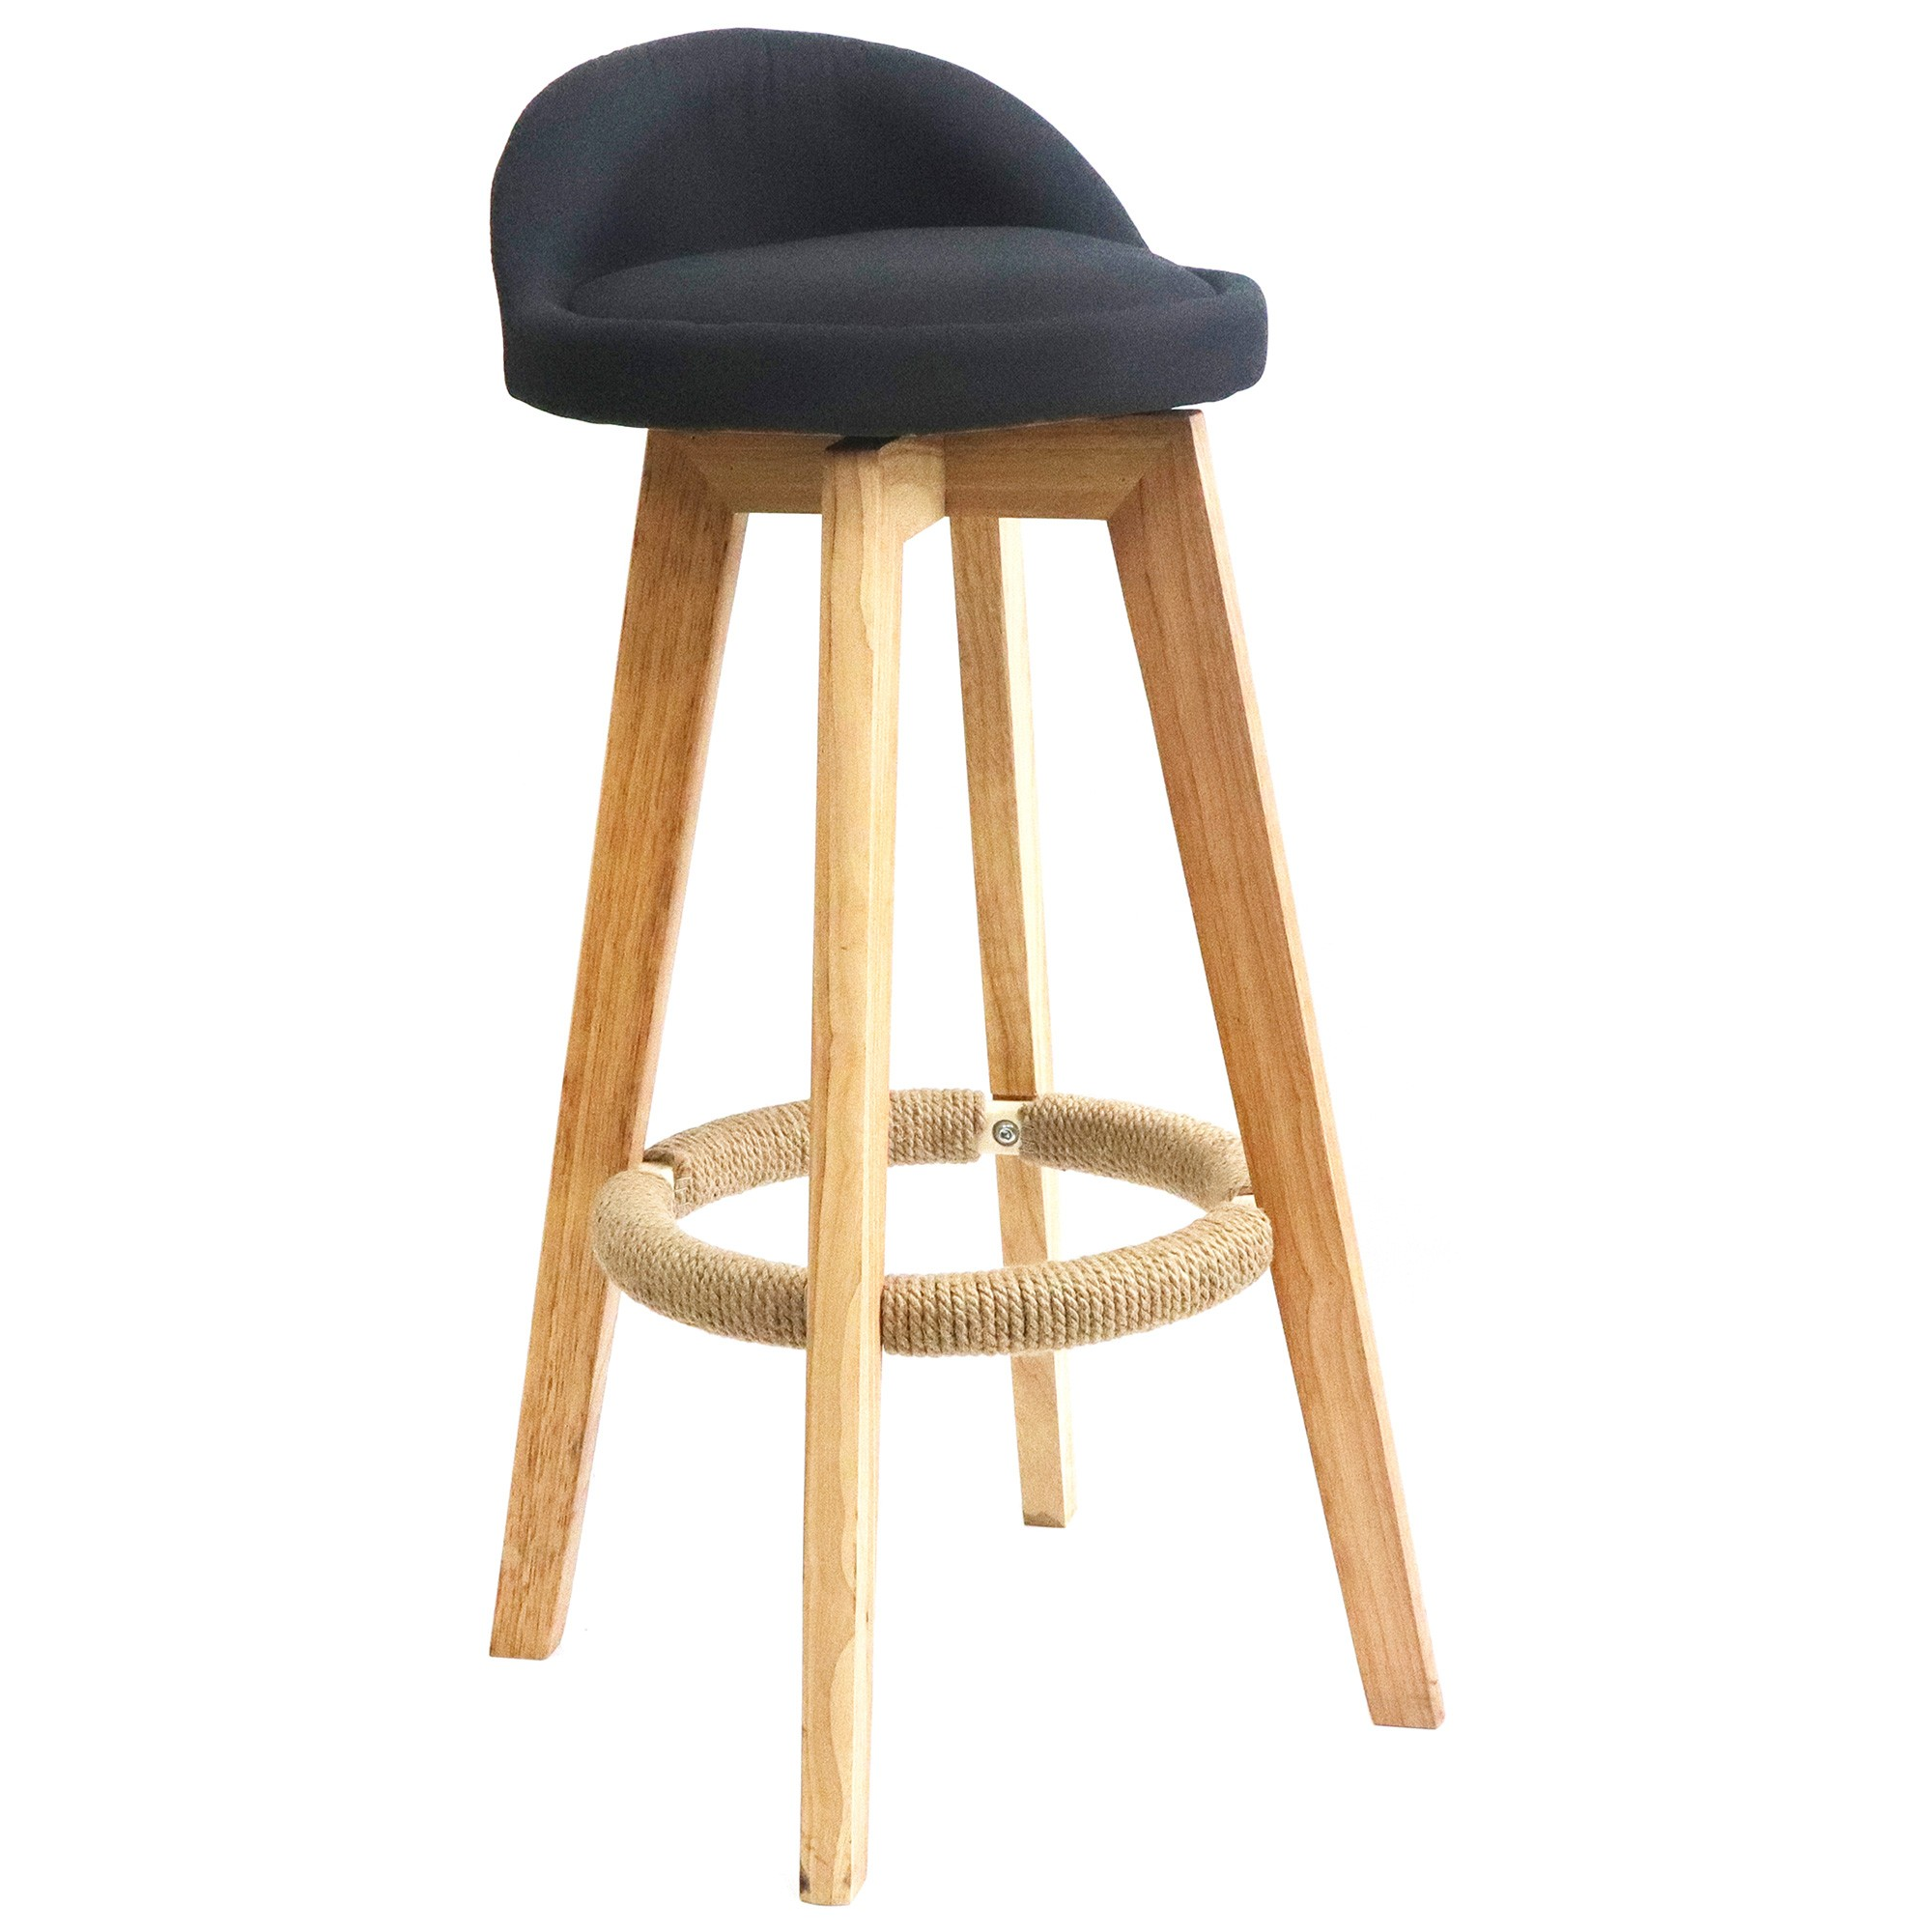 Nest Fabric & Rubber Wood Bar Stool, Black / Natural